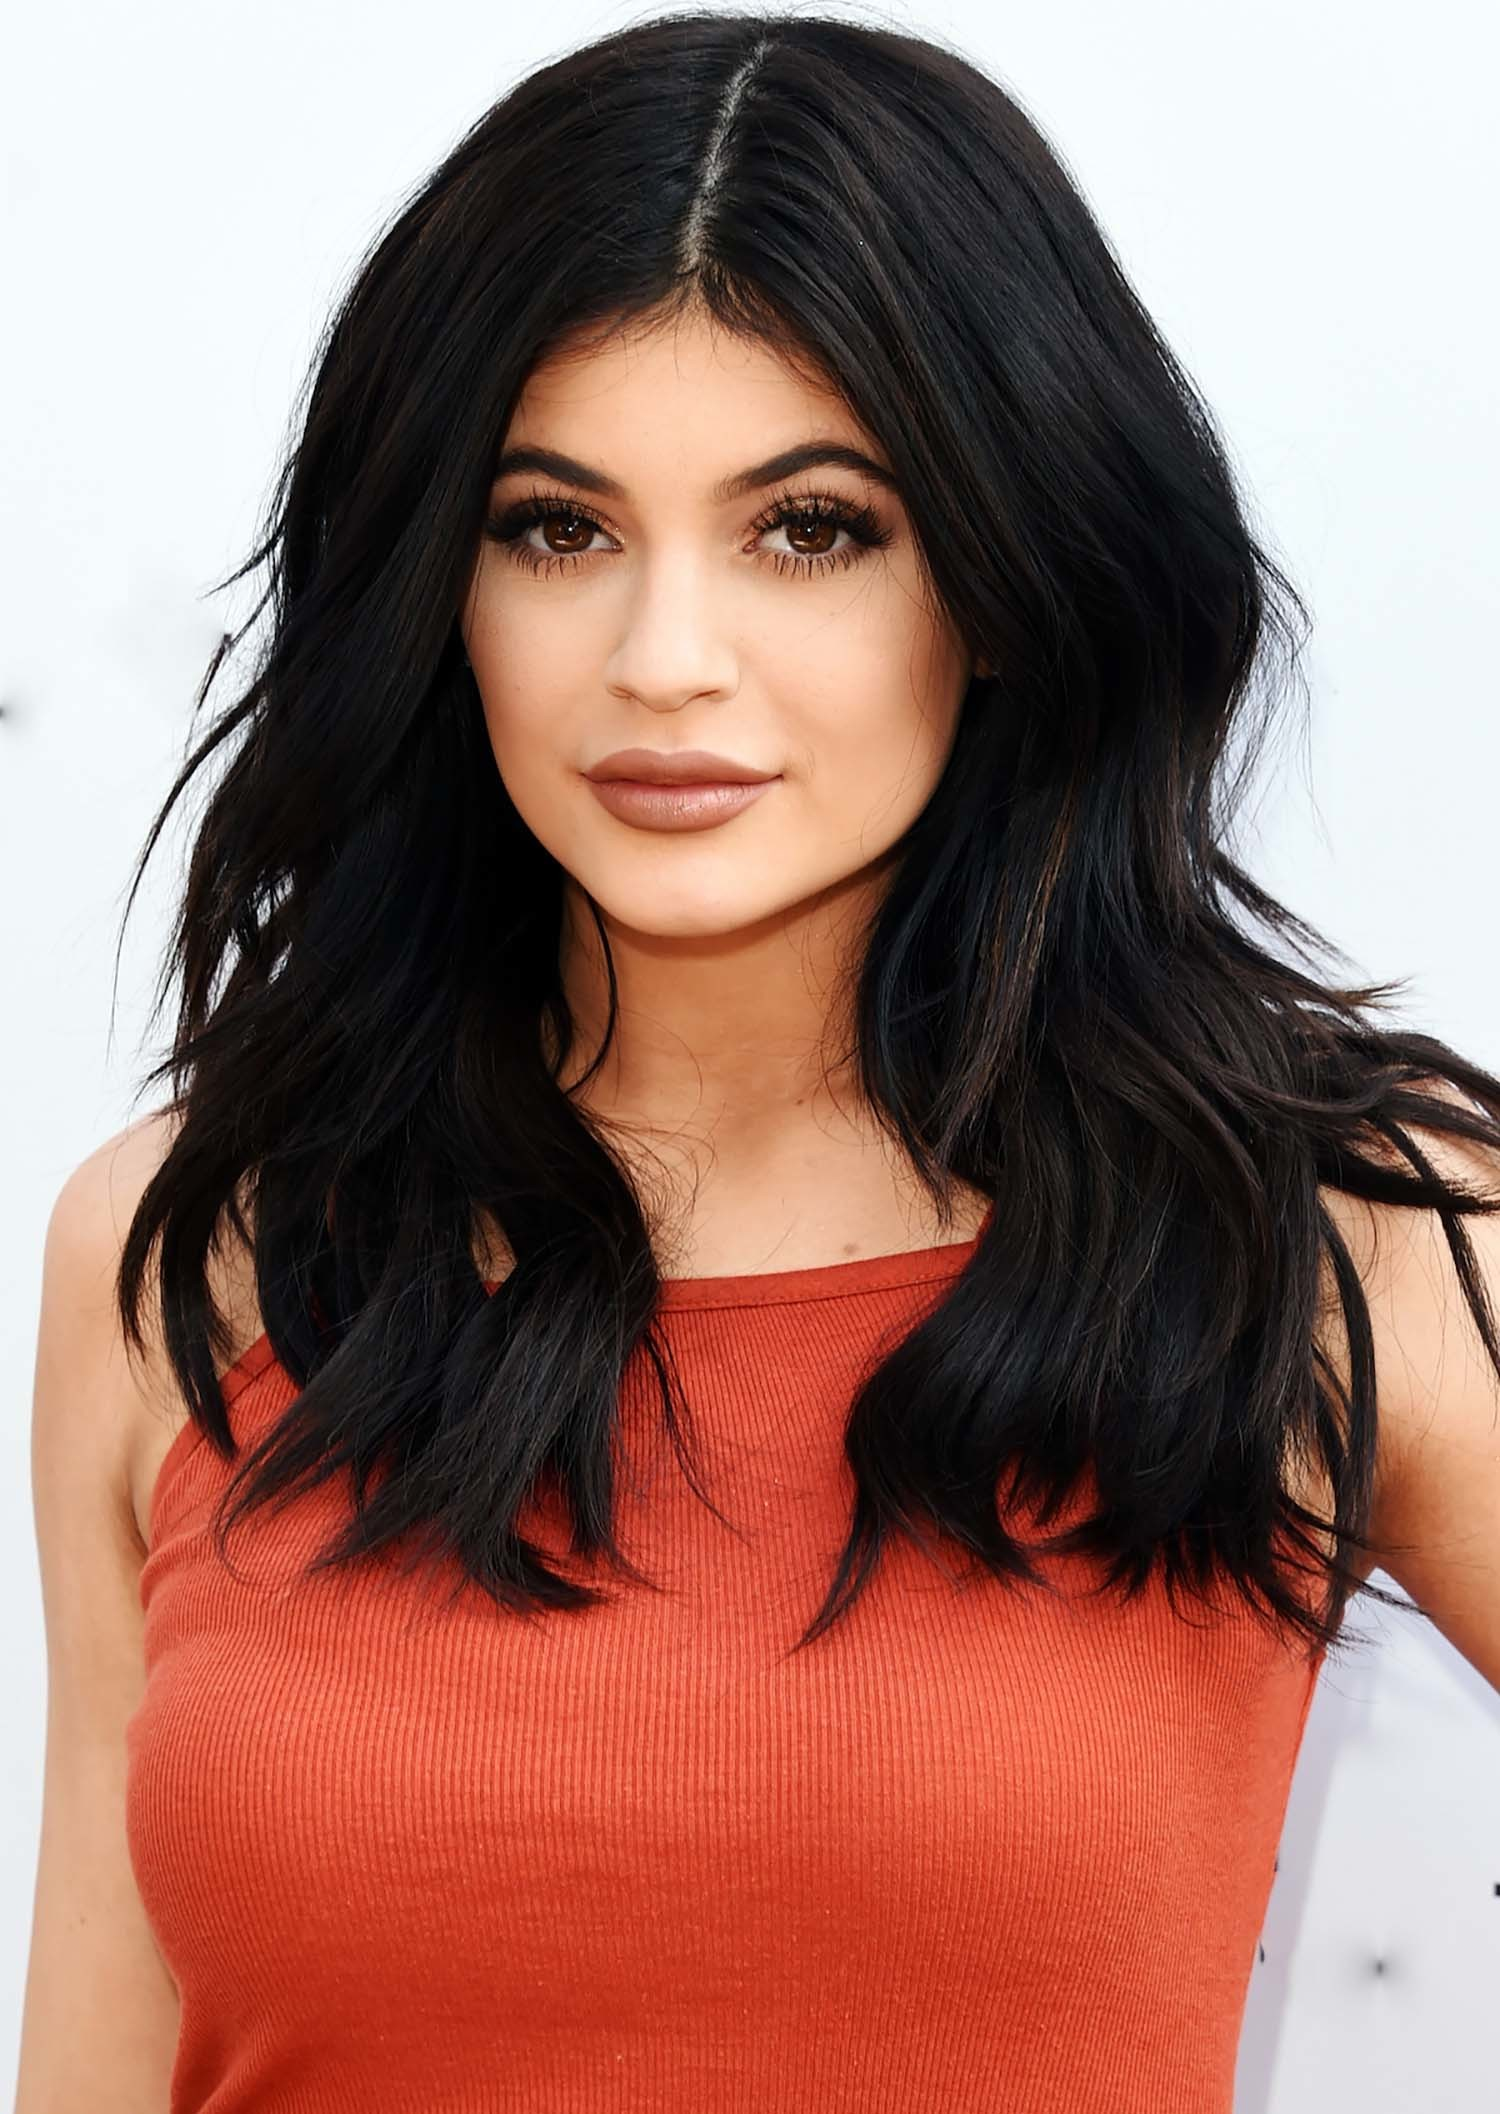 Kylie Jenner Depressed: Kylie Jenner Wallpapers ·①